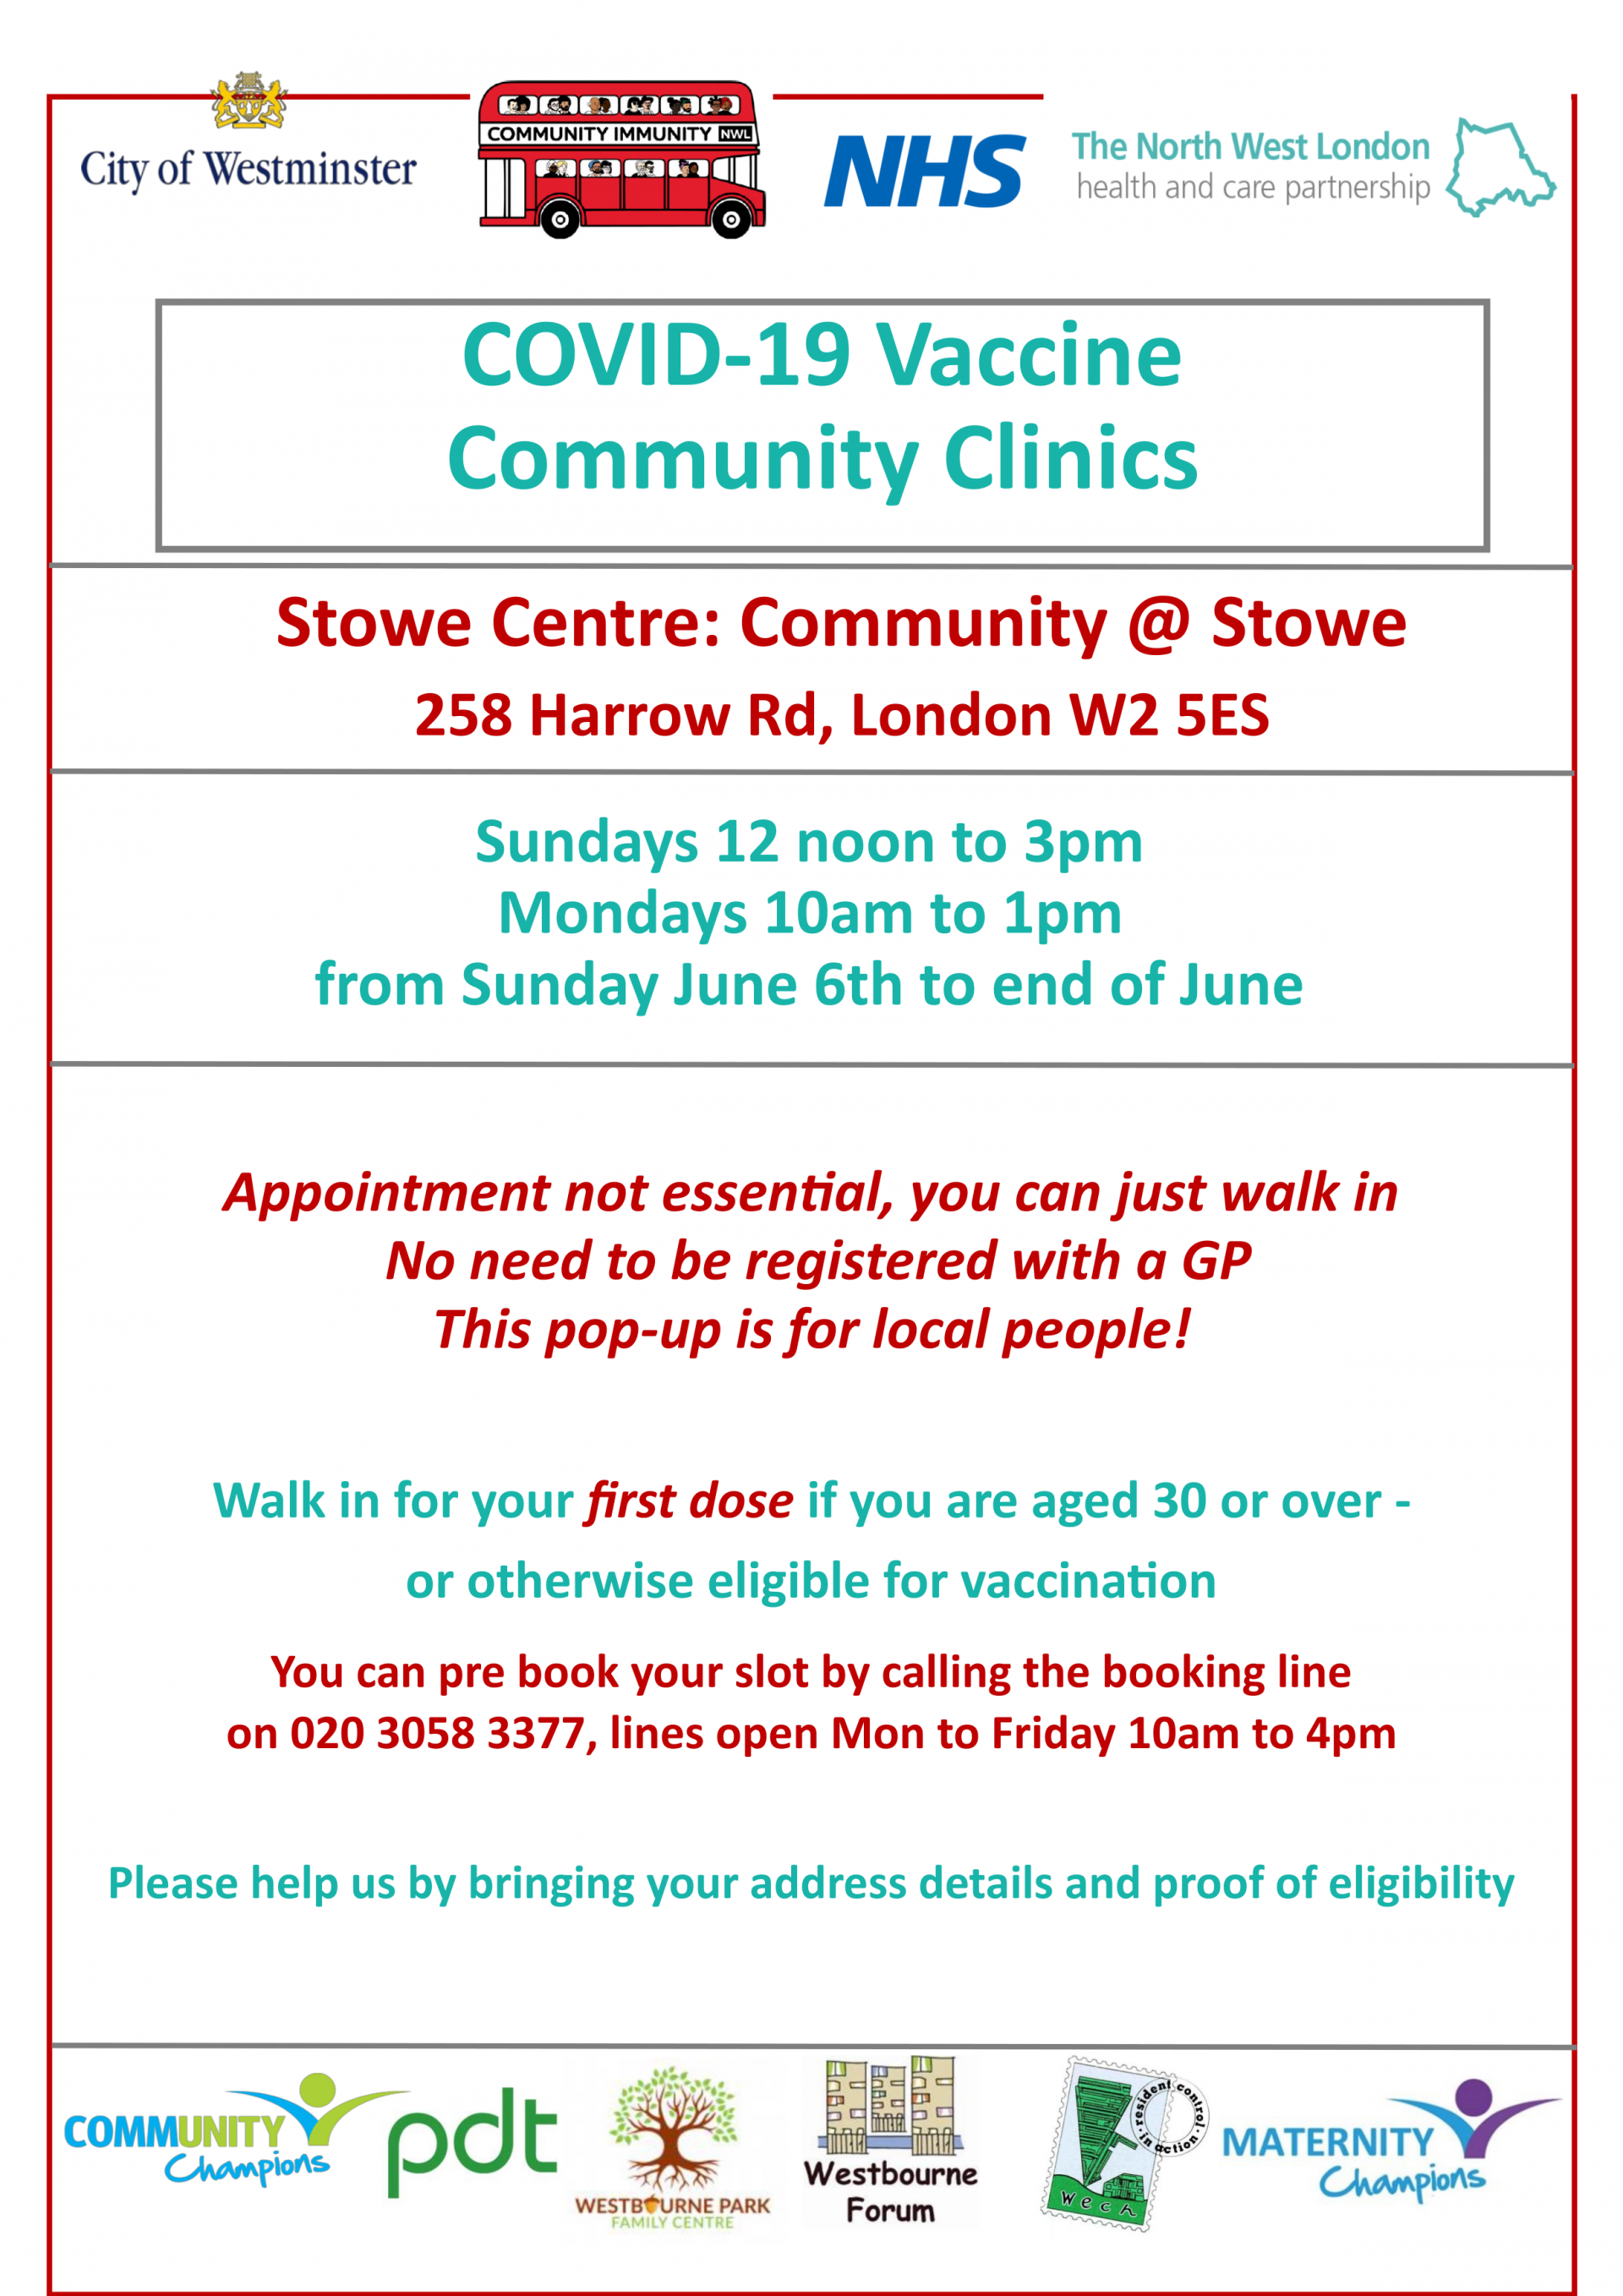 COVID-19 Vaccine Community Clinics  Stowe Centre: Community @ Stowe 258 Harrow Rd, London W2 5ES  Sundays 12 noon to 3pm Mondays 10am to 1pm from Sunday June 6th to end of June  Appointment not essential, you can just walk in No need to be registered with a GP  This pop-up is for local people!  Walk in for your first dose if you are aged 30 or over - or otherwise eligible for vaccination  You can pre book your slot by calling the booking line on 020 3058 3377, lines open Mon to Friday 10am to 4pm  Please help us by bringing your address details and proof of eligibility